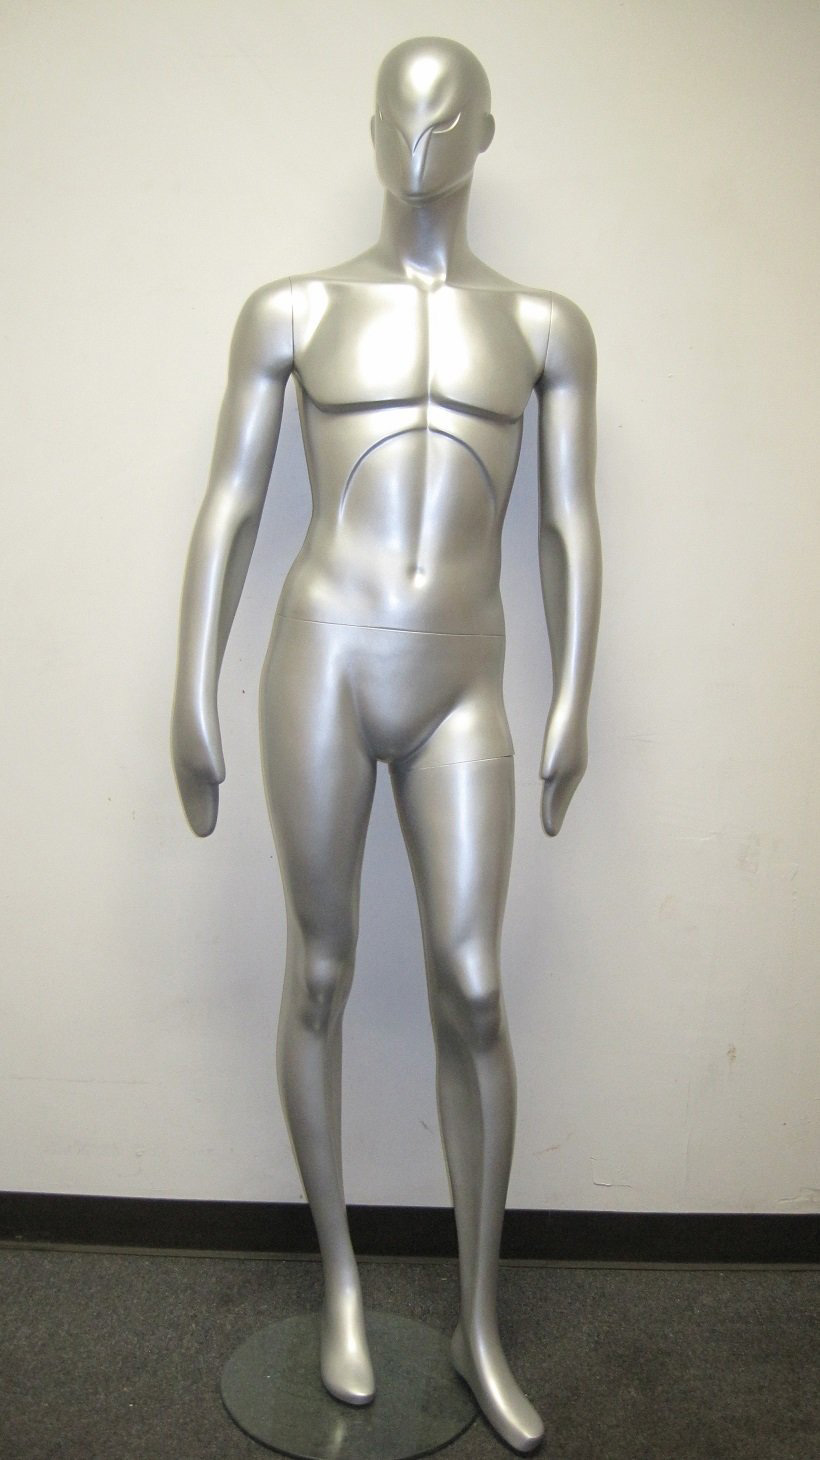 ZM-1504 - Peter - Simple Classic Silver Male Mannequin